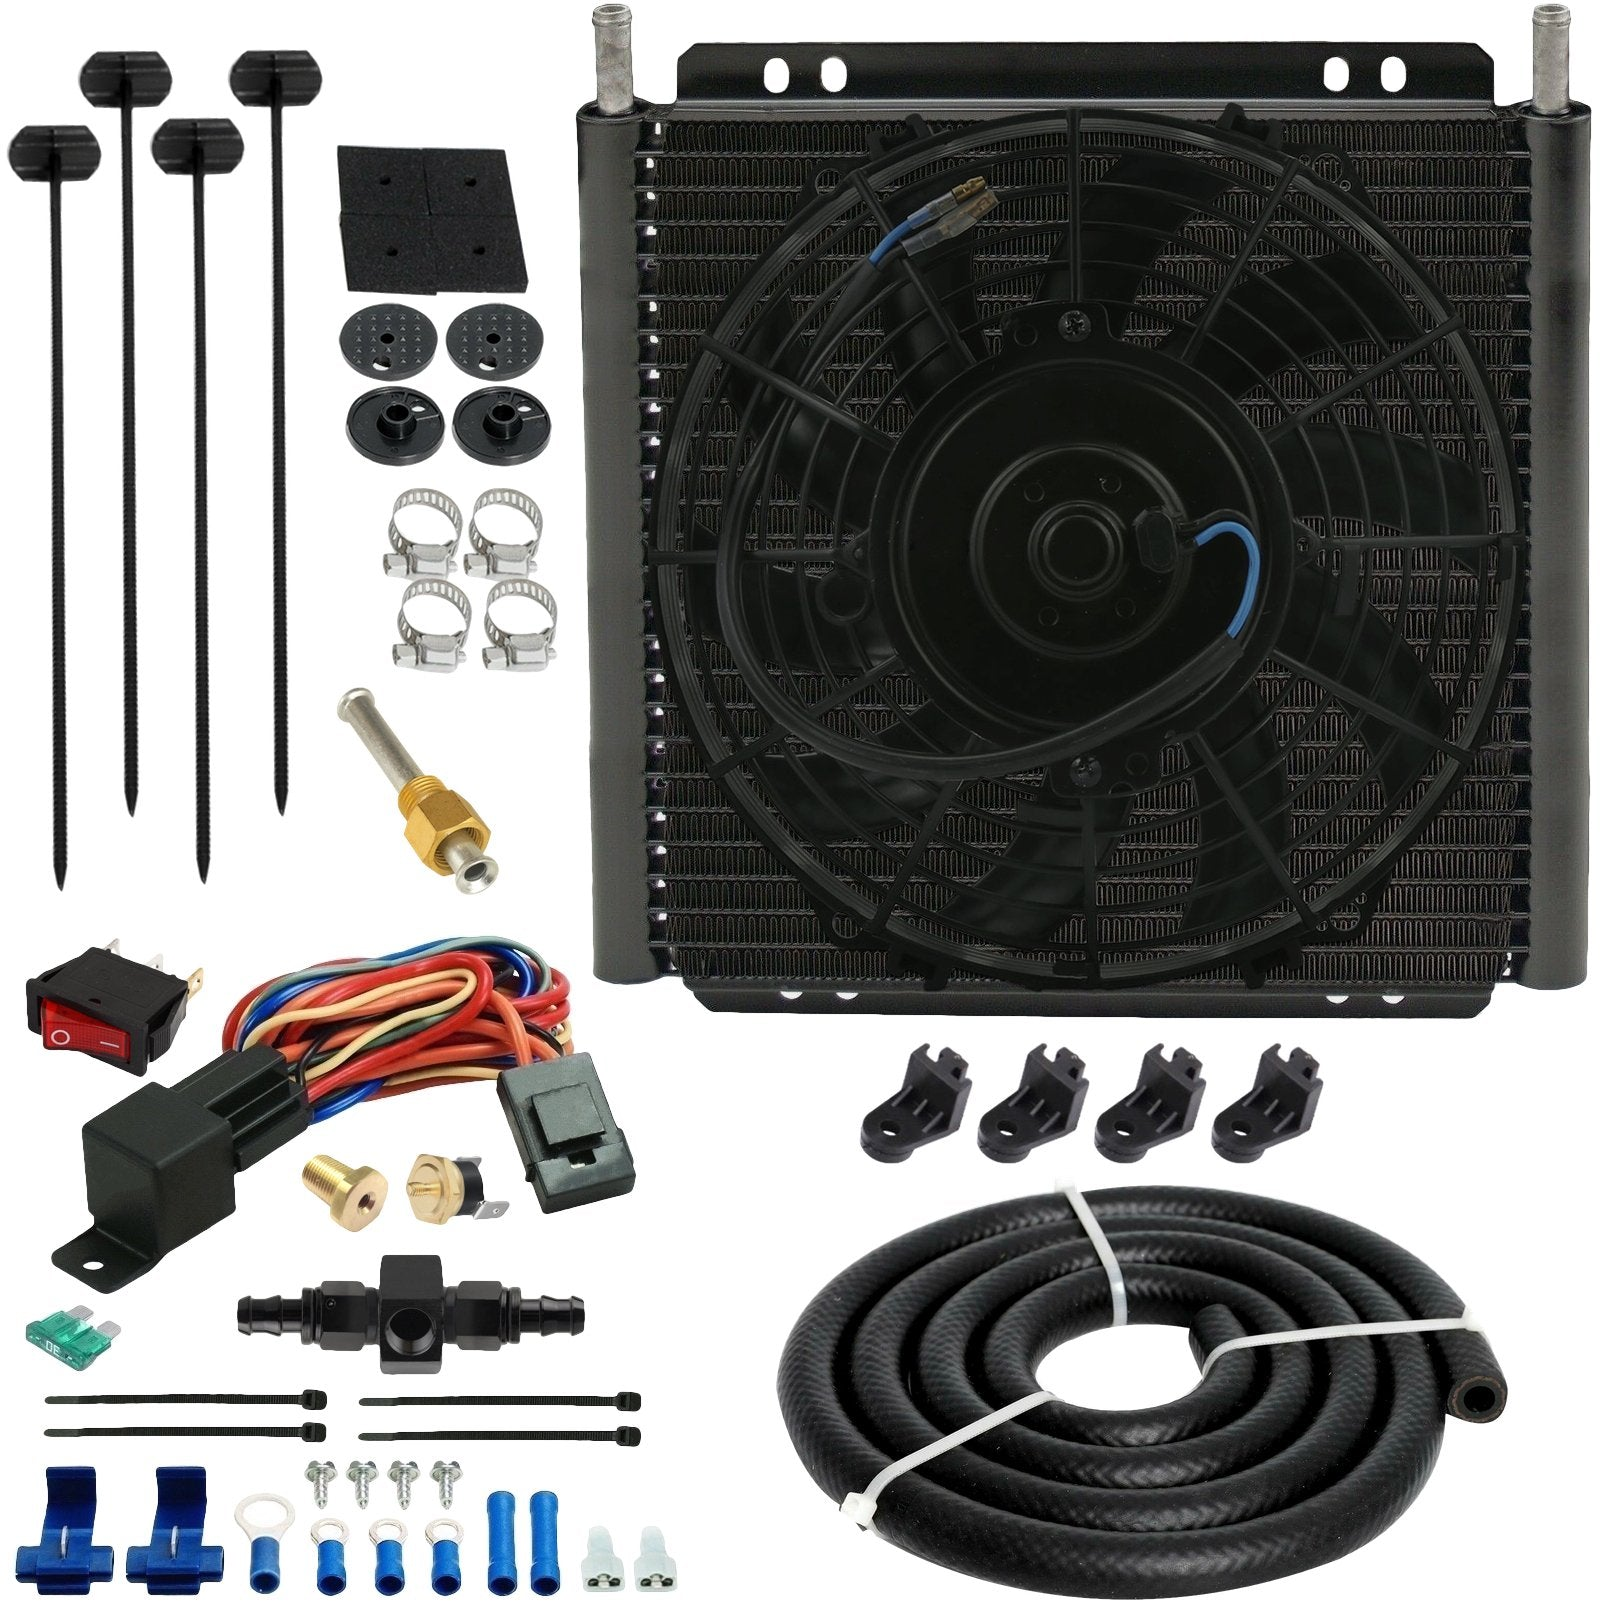 30 Row Engine Transmission Oil Cooler Electric Fan In-Line Hose Thermostat Sensor Switch Kit-Oil Cooler-American Volt-6AN-140'F On - 125'F Off-American Volt